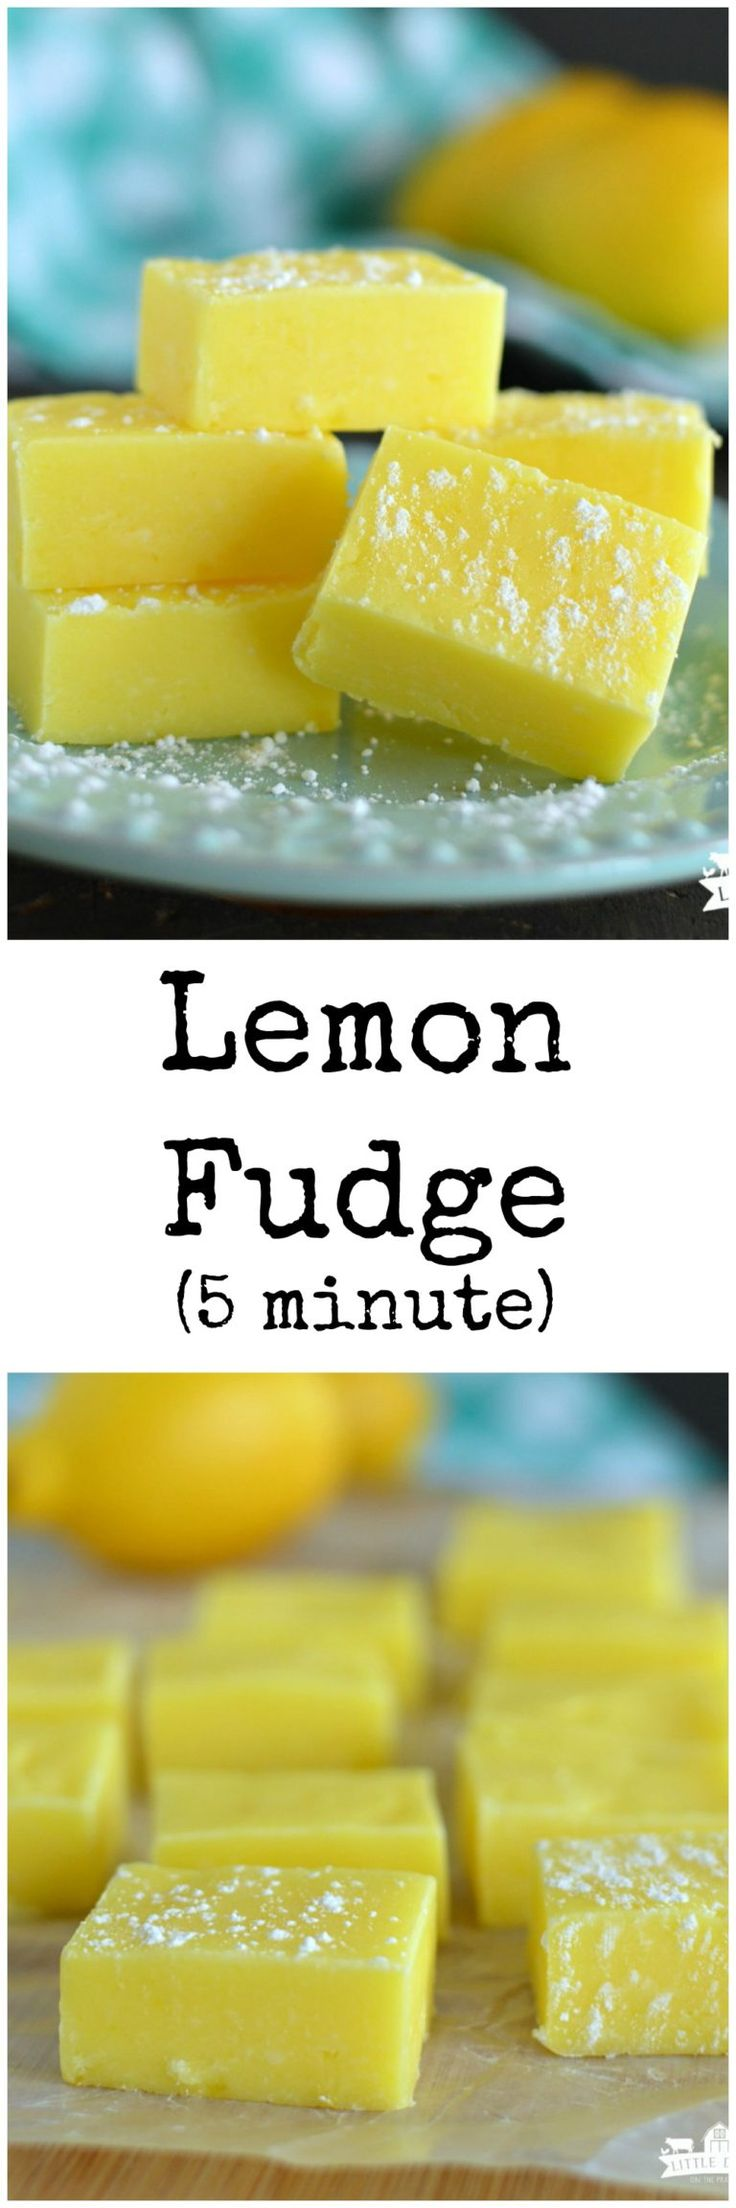 lemon-fudge-8